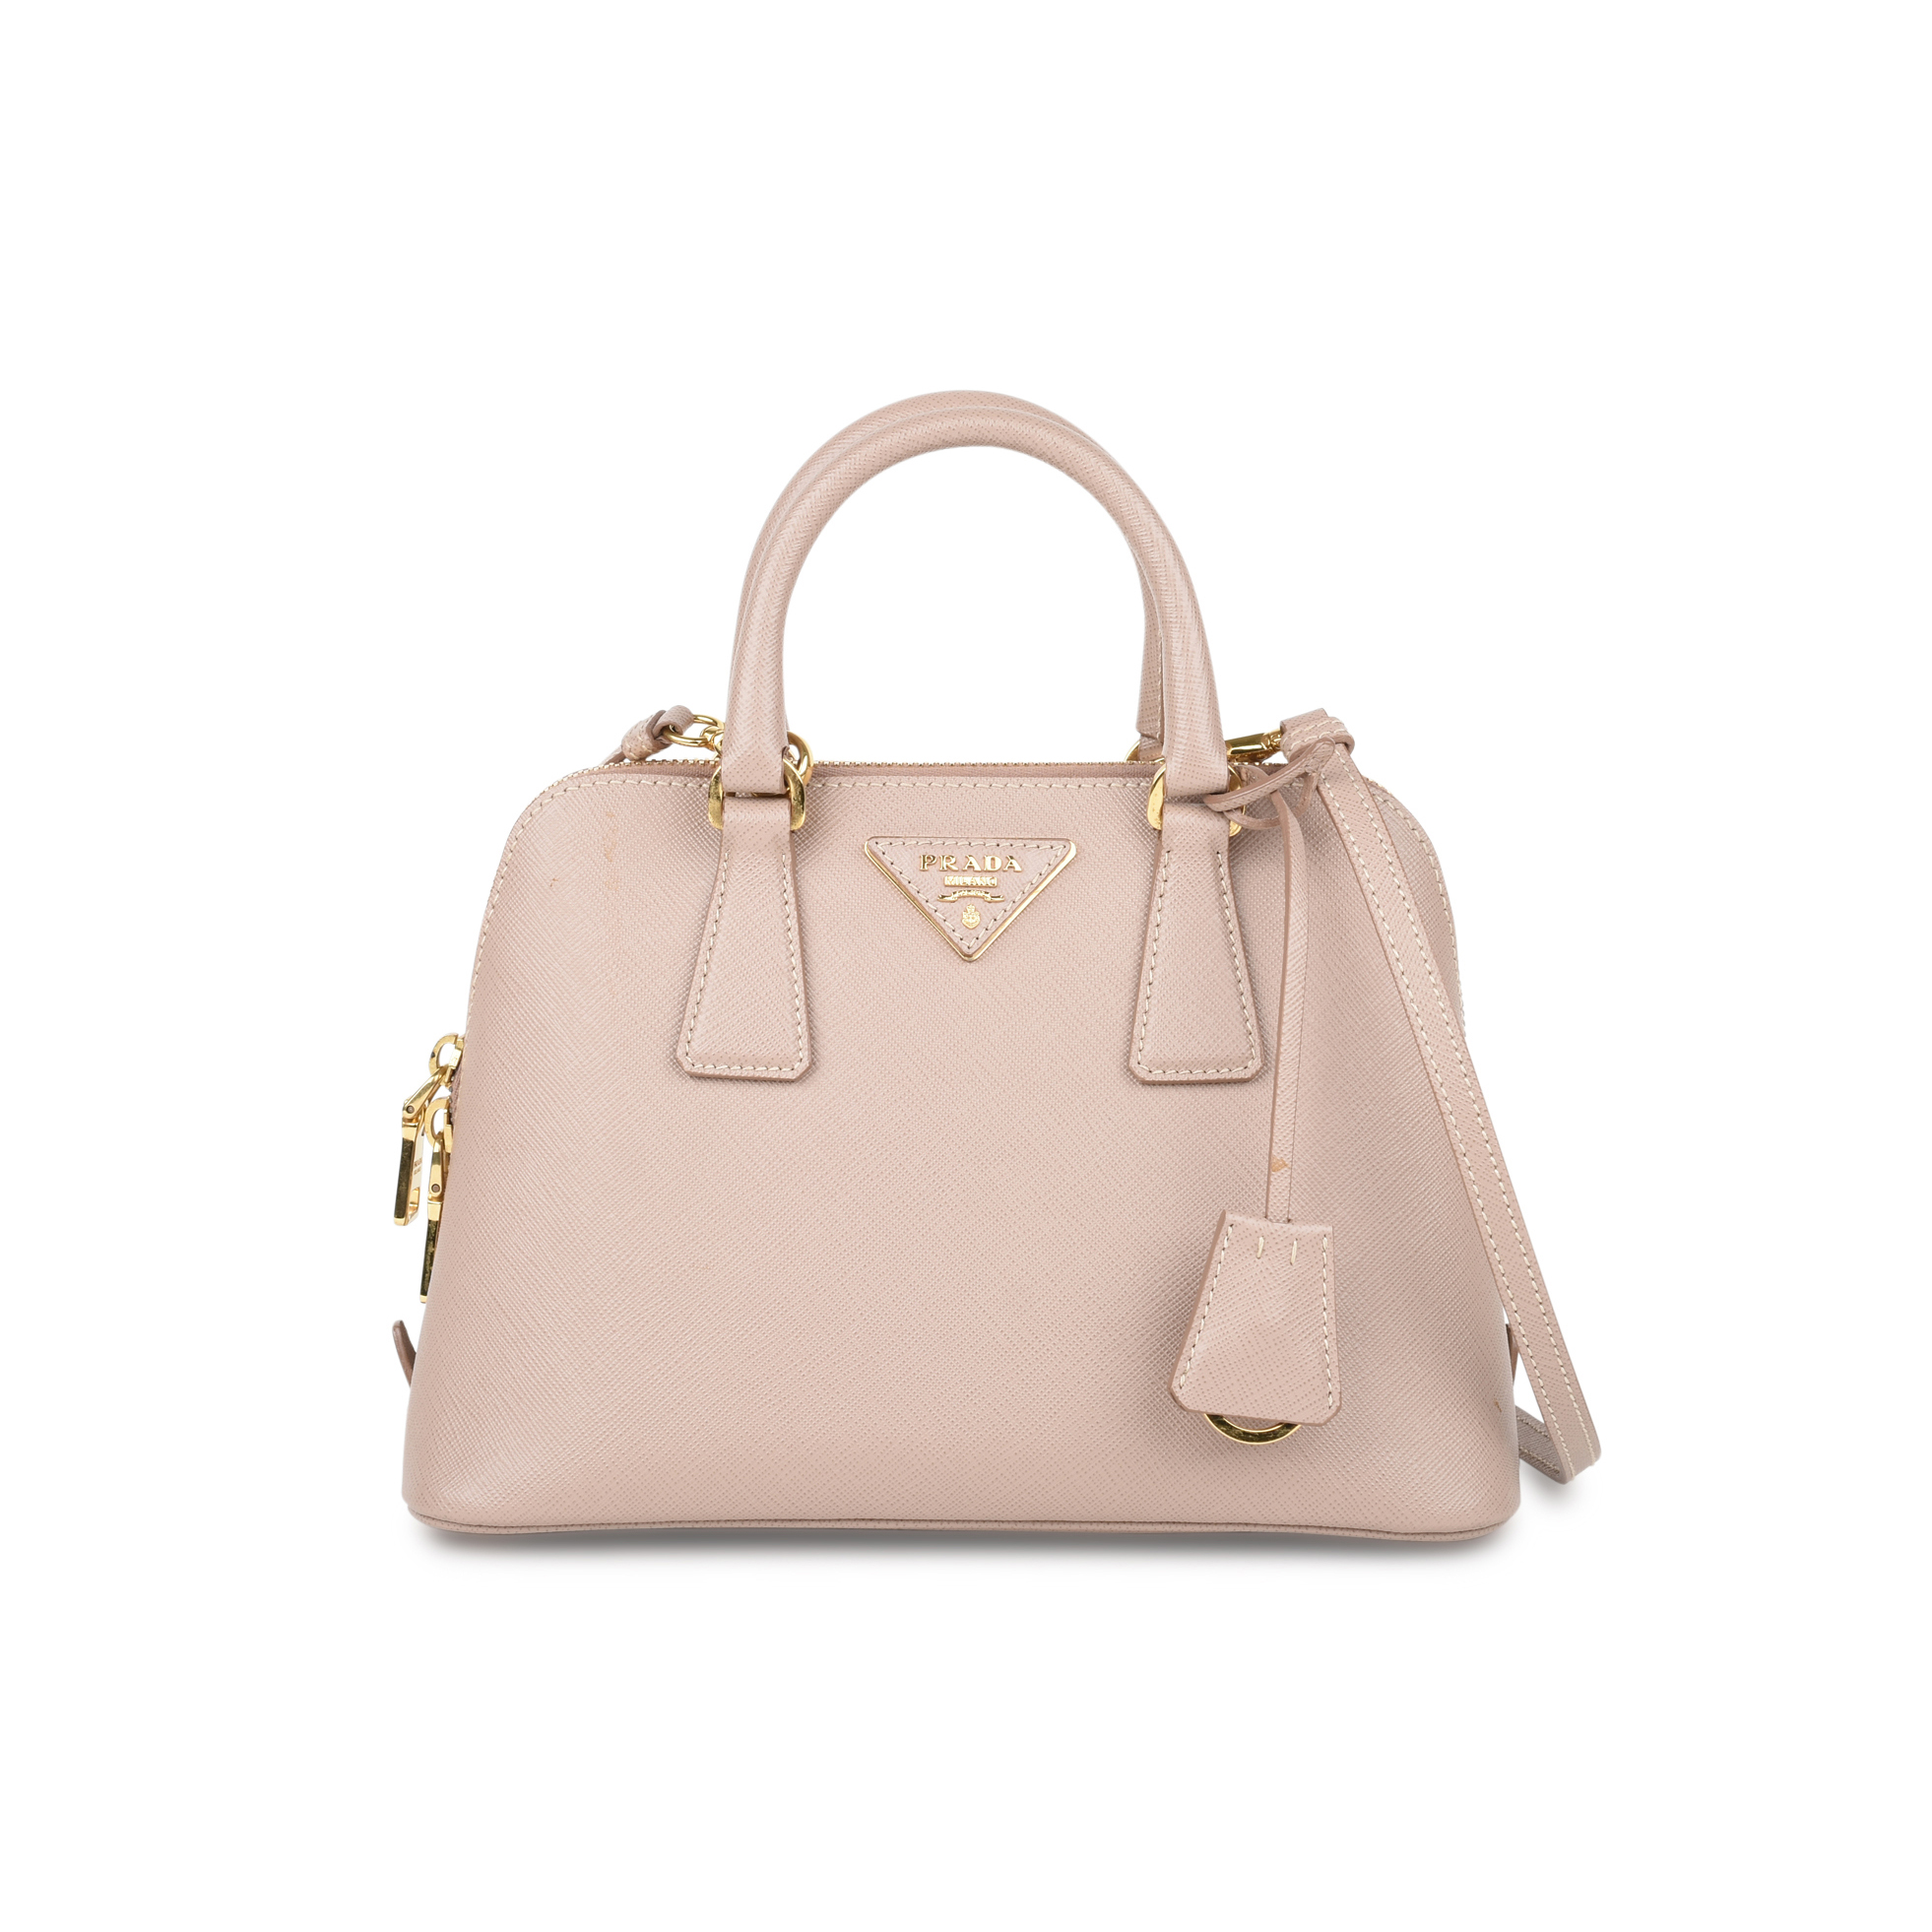 aa3083fabd6c Authentic Second Hand Prada Saffiano Vernice Mini Promenade Bag  (PSS-420-00063) | THE FIFTH COLLECTION